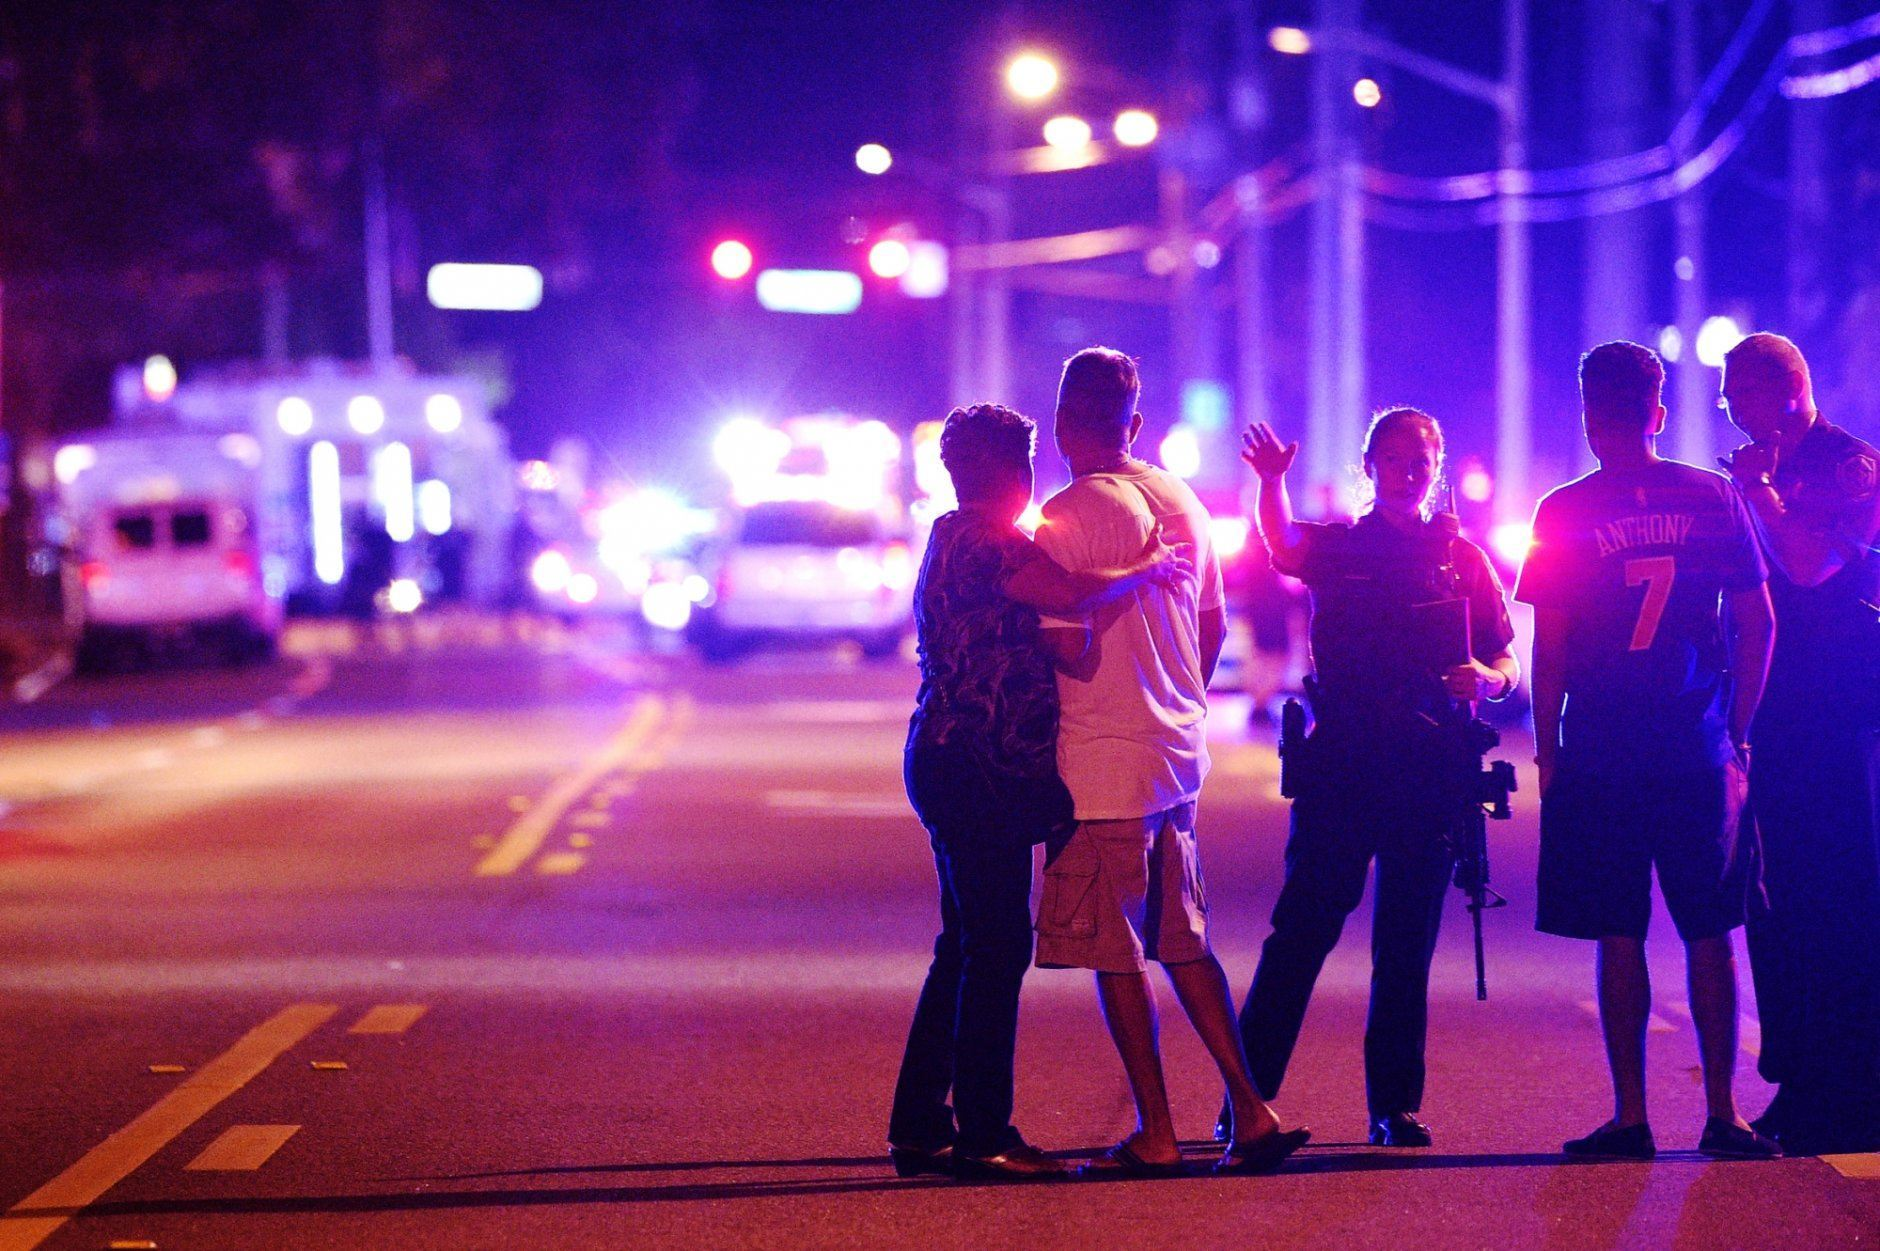 FILE - In this June 12, 2016 file photo, an Orlando Police officer directs family members away from a mass shooting at the Pulse nightclub in Orlando, Fla., that left 49 people dead. The shooter was killed by police after a three-hour standoff. After the tragedy, police were equipped with a new layer of body armor to stop rifle rounds. (AP Photo/Phelan M. Ebenhack, File)